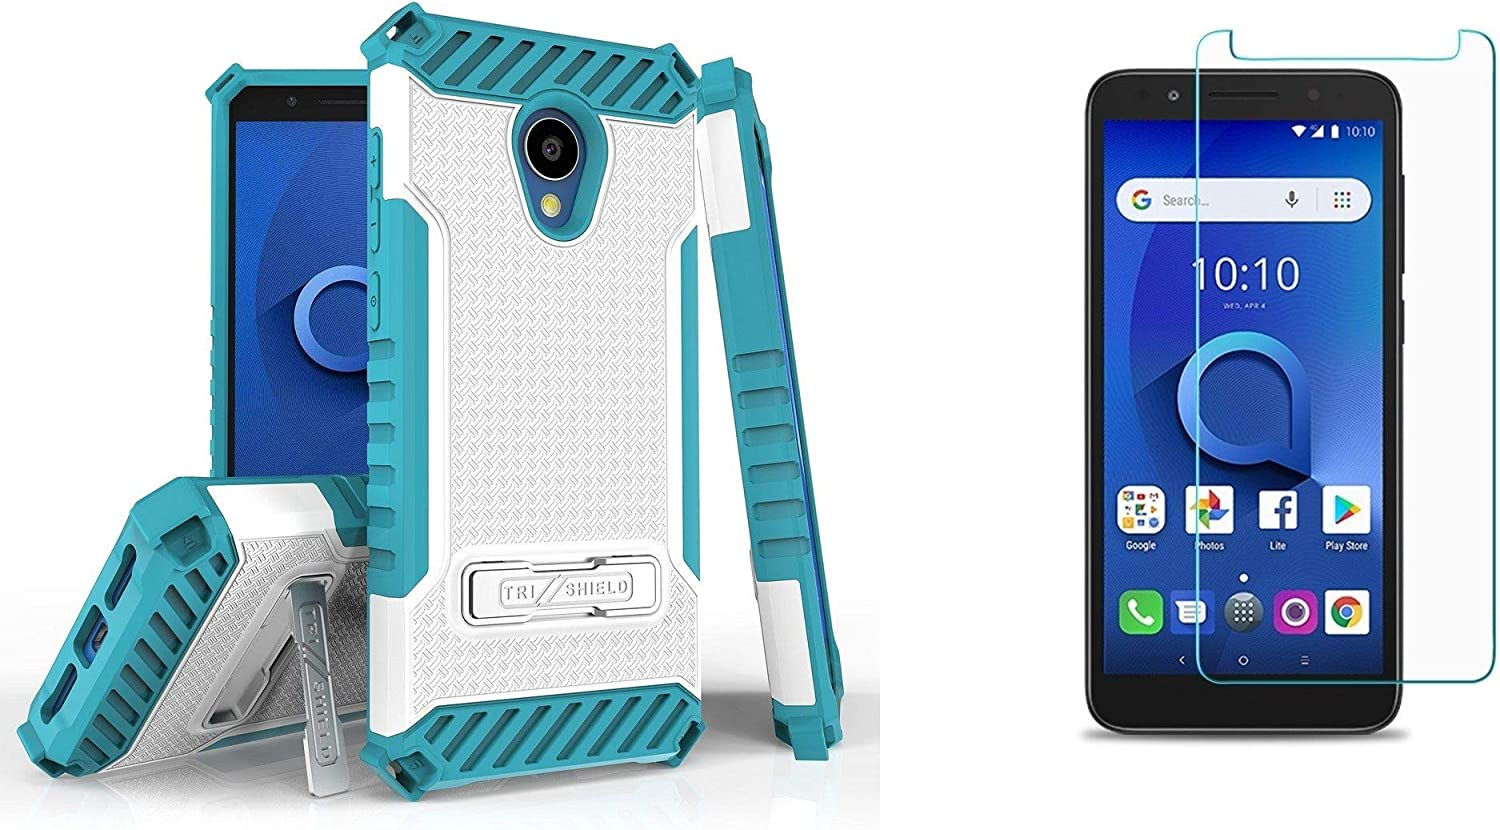 1X Evolve idealXTRA Military Grade Shockproof Slim Cover TCL LX Case Tempered Glass Screen Protector and Atom Cloth BC TriShield Series Compatible with Alcatel Avalon V White//Teal